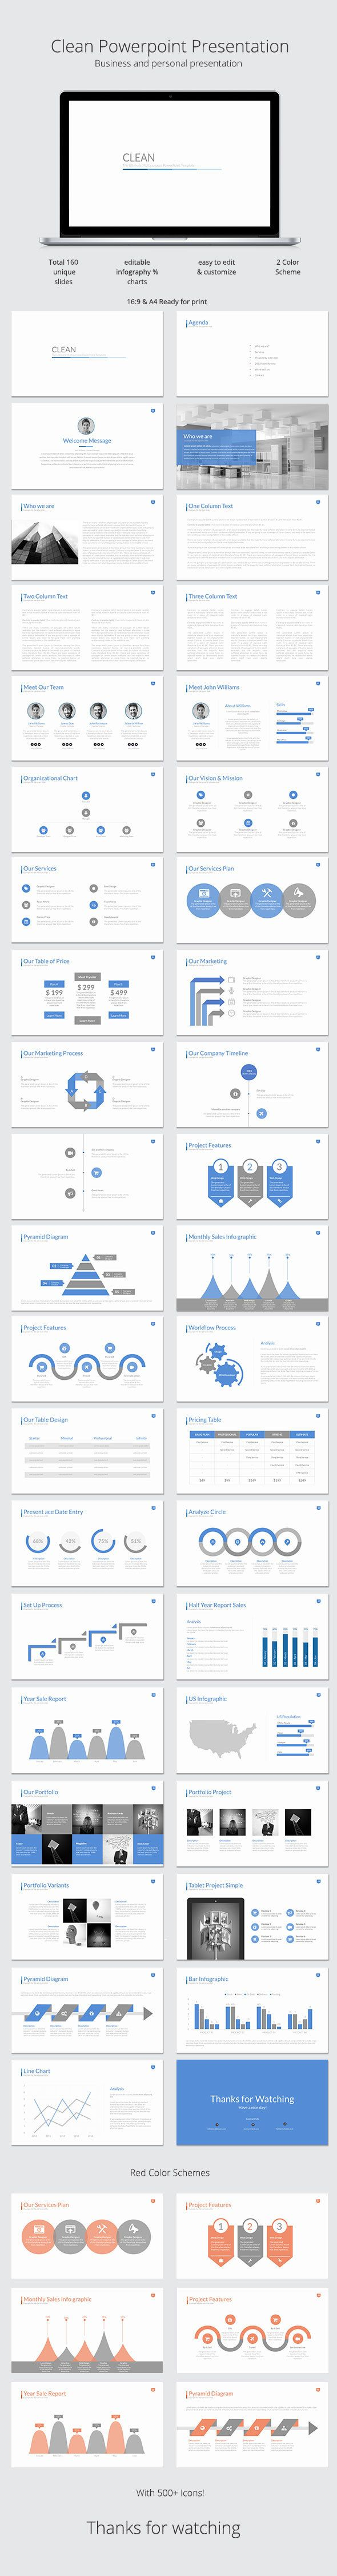 Coolmathgamesus  Inspiring  Ideas About Powerpoint Presentations On Pinterest With Lovely Clean Powerpoint Template With Breathtaking How A Bill Becomes A Law Powerpoint Also Insert Video Into Powerpoint In Addition Alternatives To Powerpoint And Powerpoint Picture Transparency As Well As Convert Powerpoint To Video Additionally How To Record Narration In Powerpoint From Pinterestcom With Coolmathgamesus  Lovely  Ideas About Powerpoint Presentations On Pinterest With Breathtaking Clean Powerpoint Template And Inspiring How A Bill Becomes A Law Powerpoint Also Insert Video Into Powerpoint In Addition Alternatives To Powerpoint From Pinterestcom